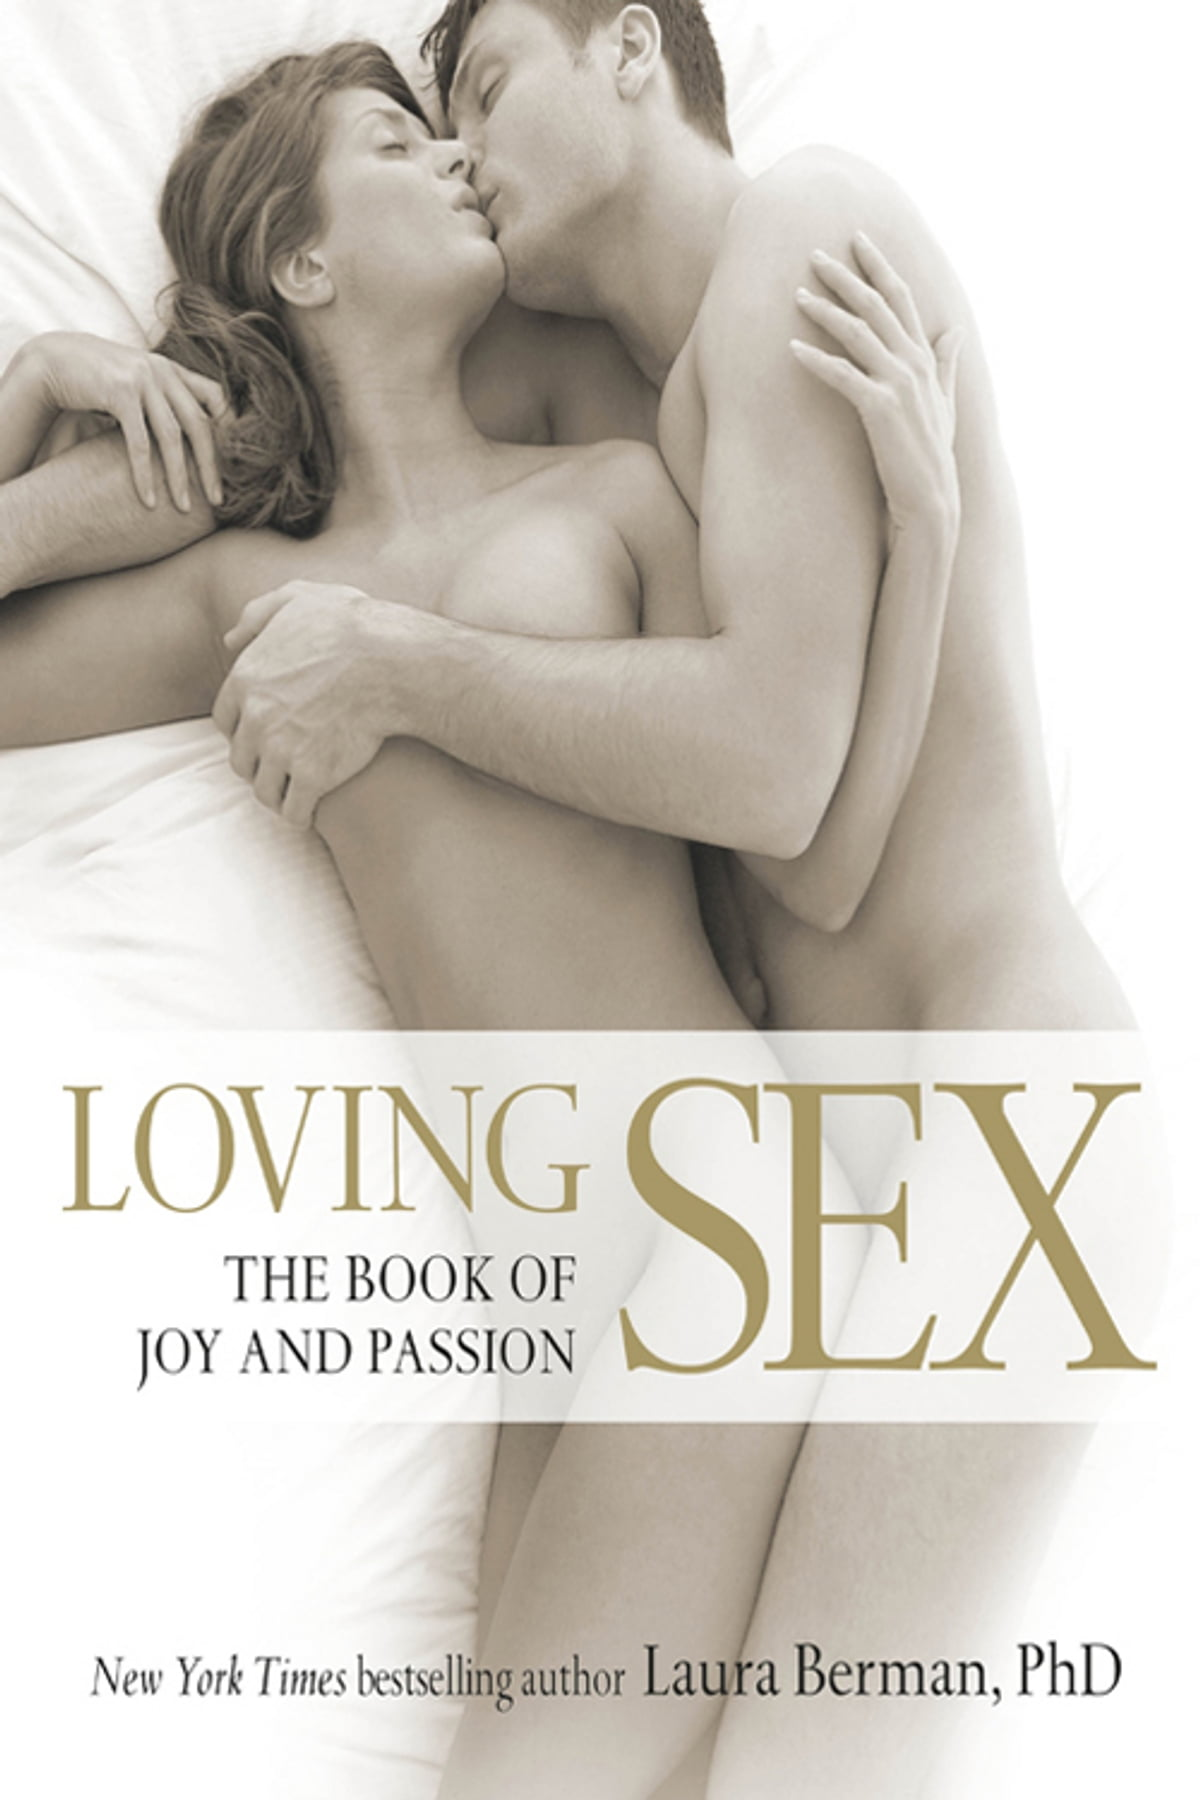 The book sex, raw amature porn